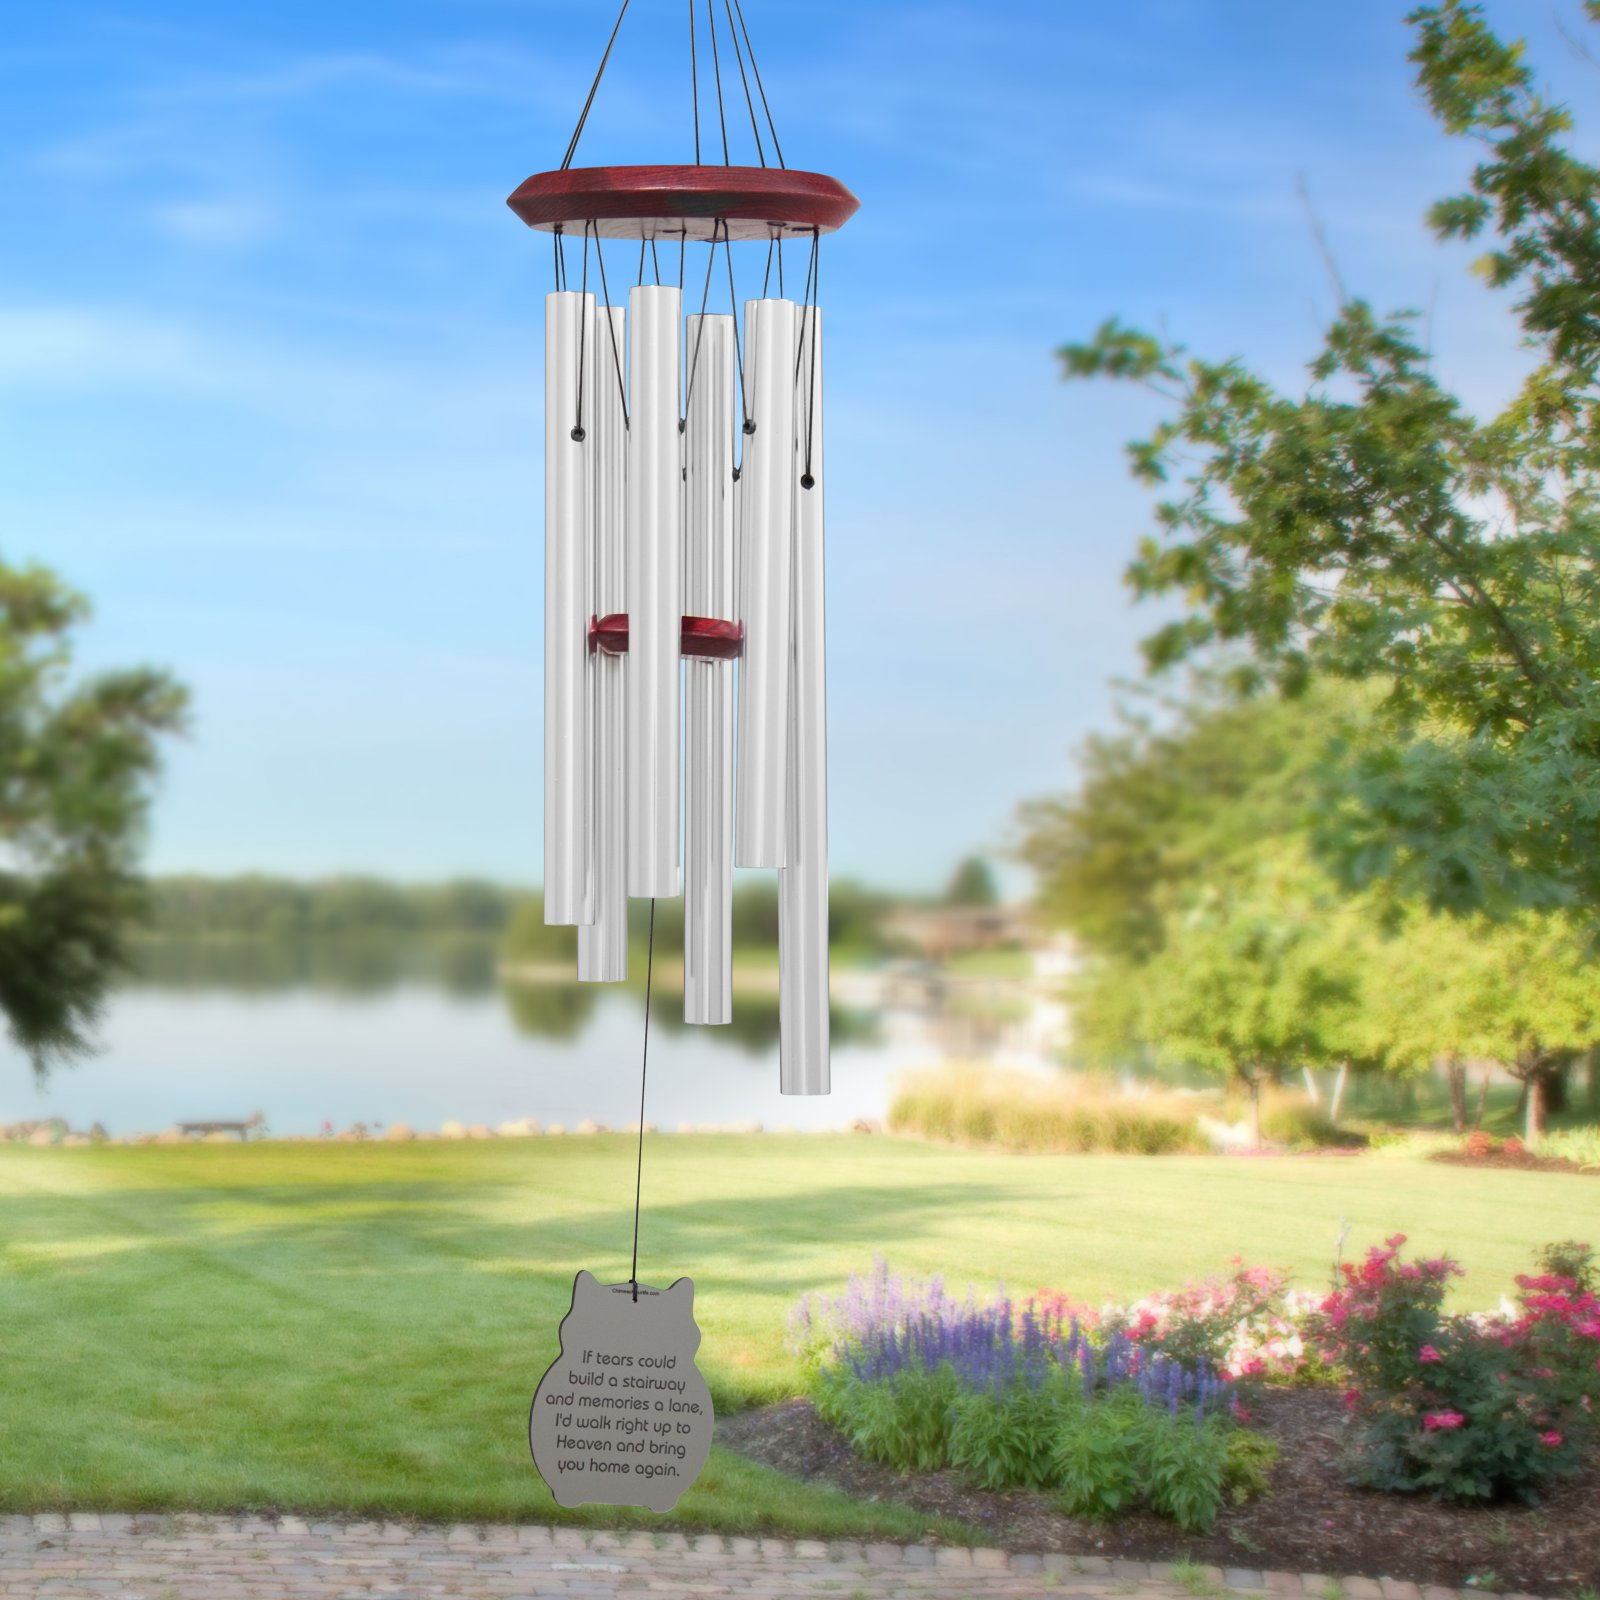 Chimes of Your Life Cat If Tears Pet Memorial Wind Chime by Chimes of Your Life